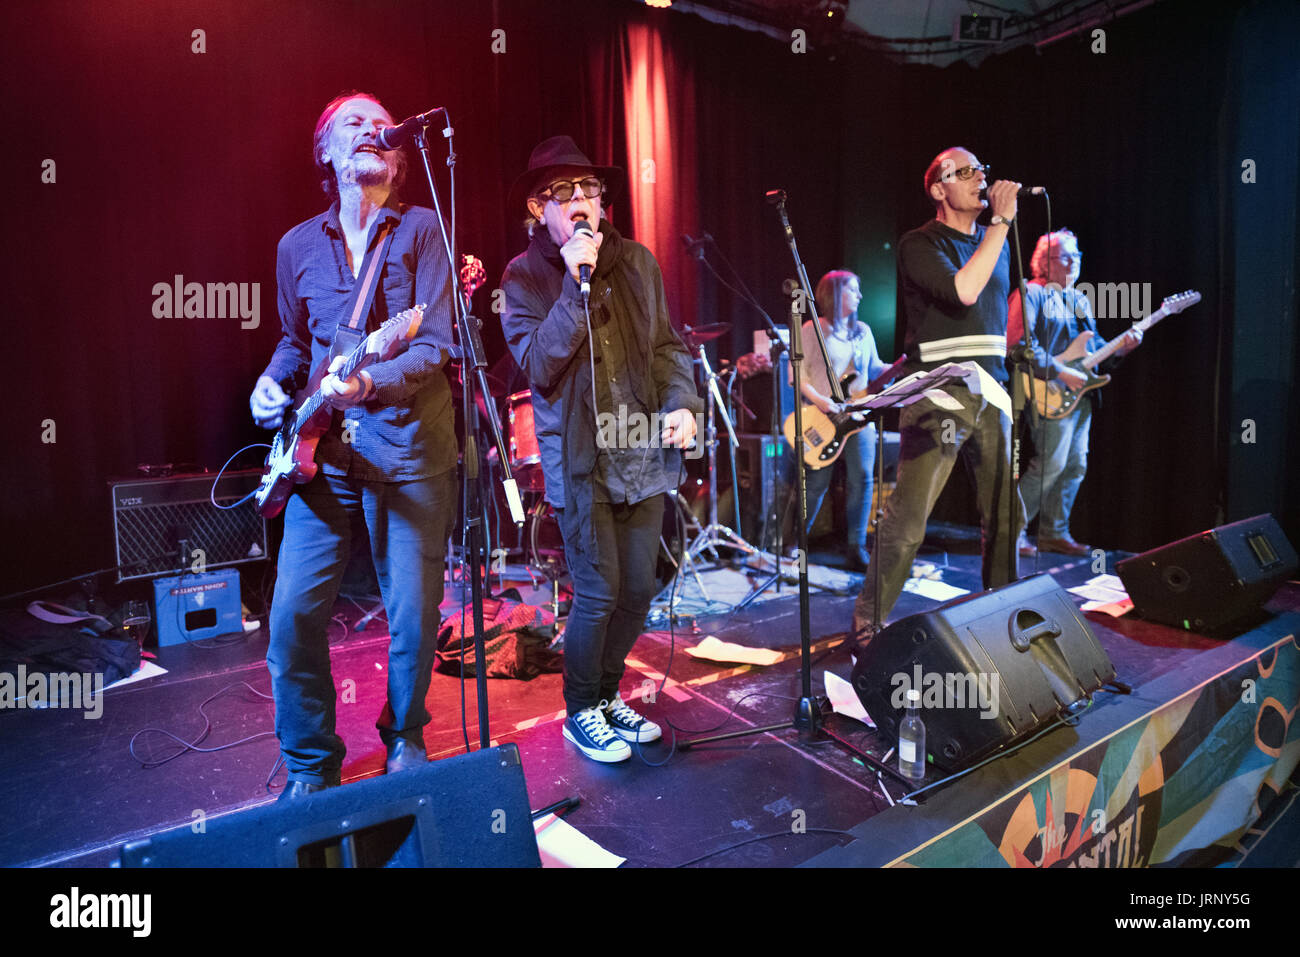 Preston, UK. 05th Aug, 2017. The Mekons play a gig at The Continental, Preston, UK. The original 1970s line-up of - Stock Image